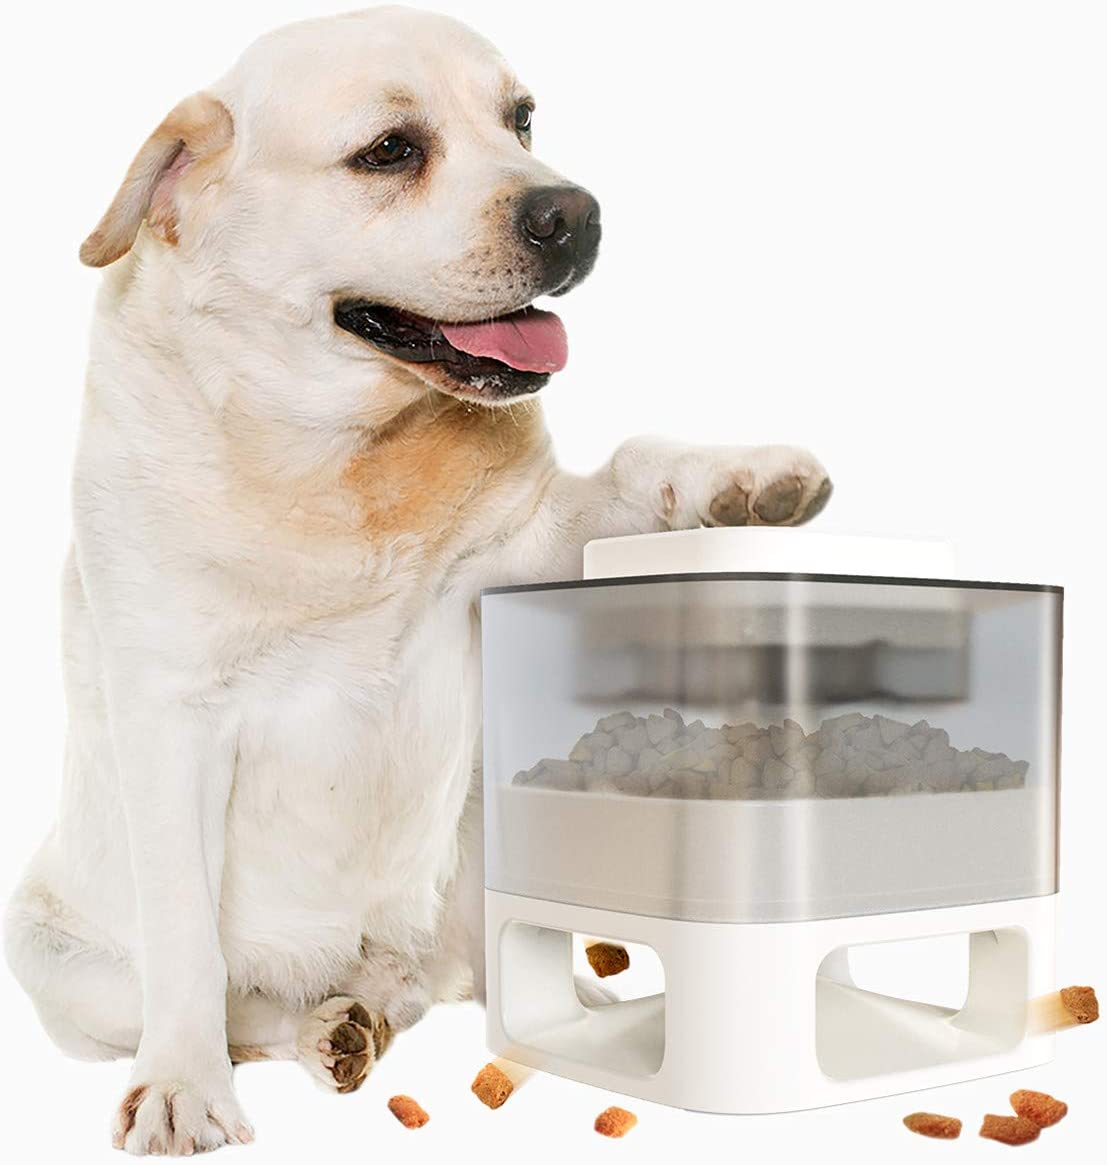 Sakiway Dog Automatic Feeder Treat Toys, Interactive Pet Slow Food Dispenser for Small Medium Large Dogs, No More Boredom and Obesity